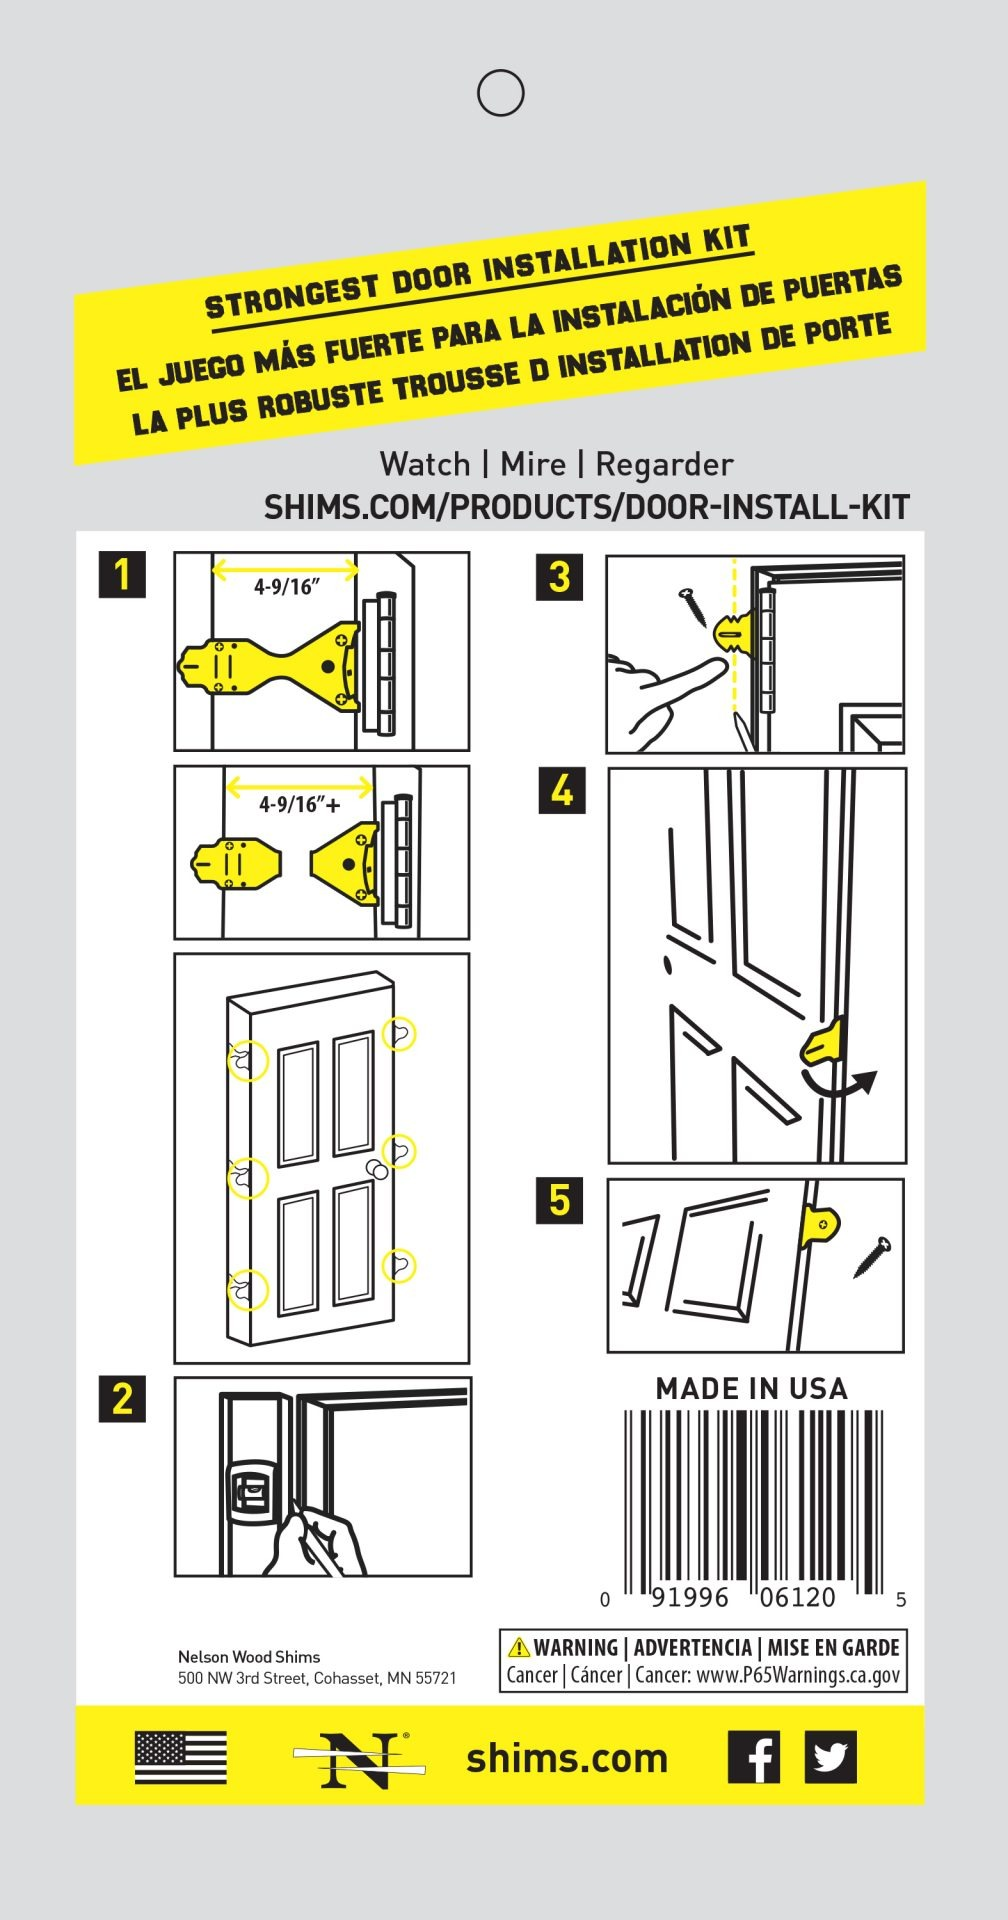 Door Install Kit Packaging Image (back)